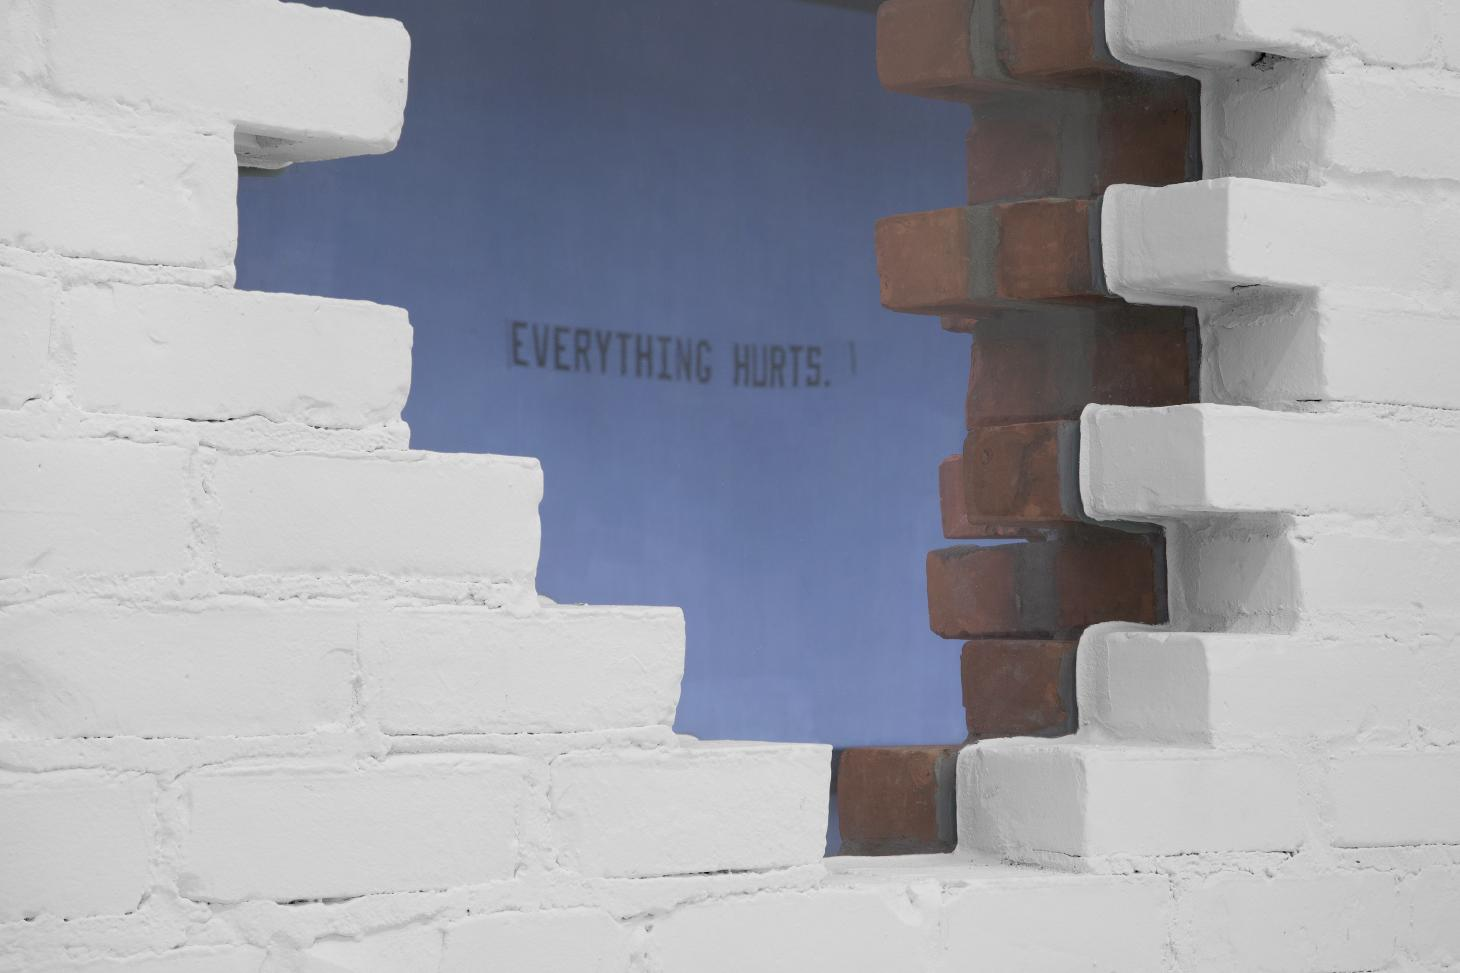 Image of Jammie Holmes' 2020 artwork Everything Hurts as viewed through the portal on Library Street Collective's new gallery